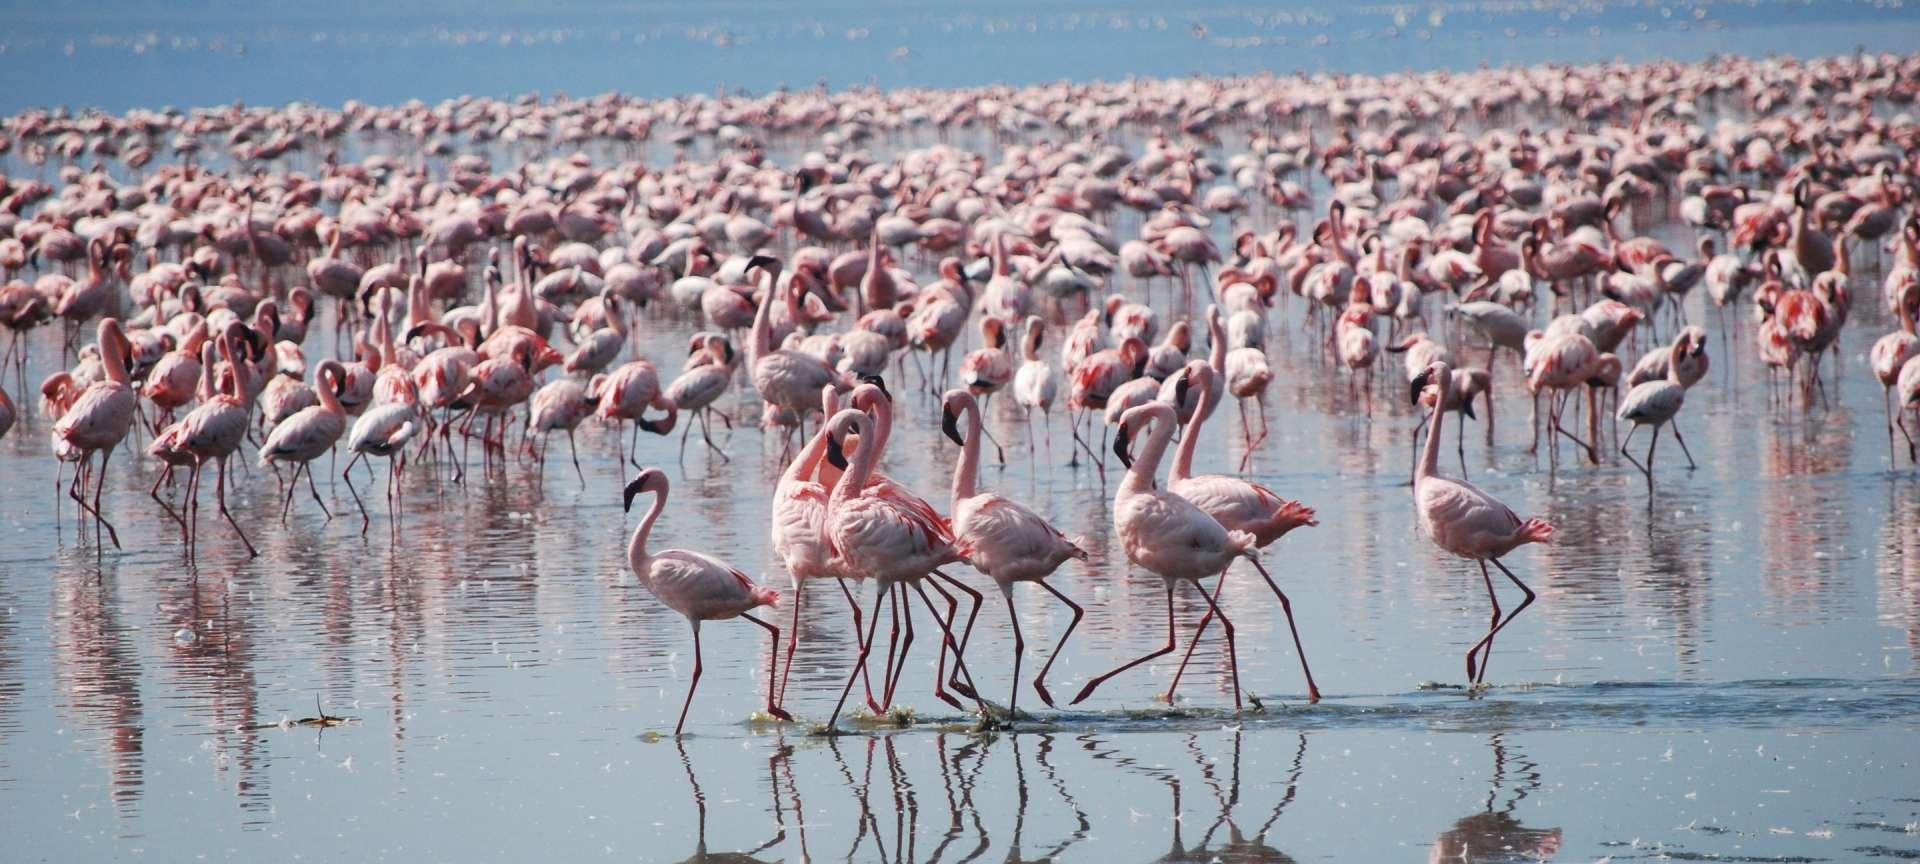 Flamingos make for amazing photographic subjects